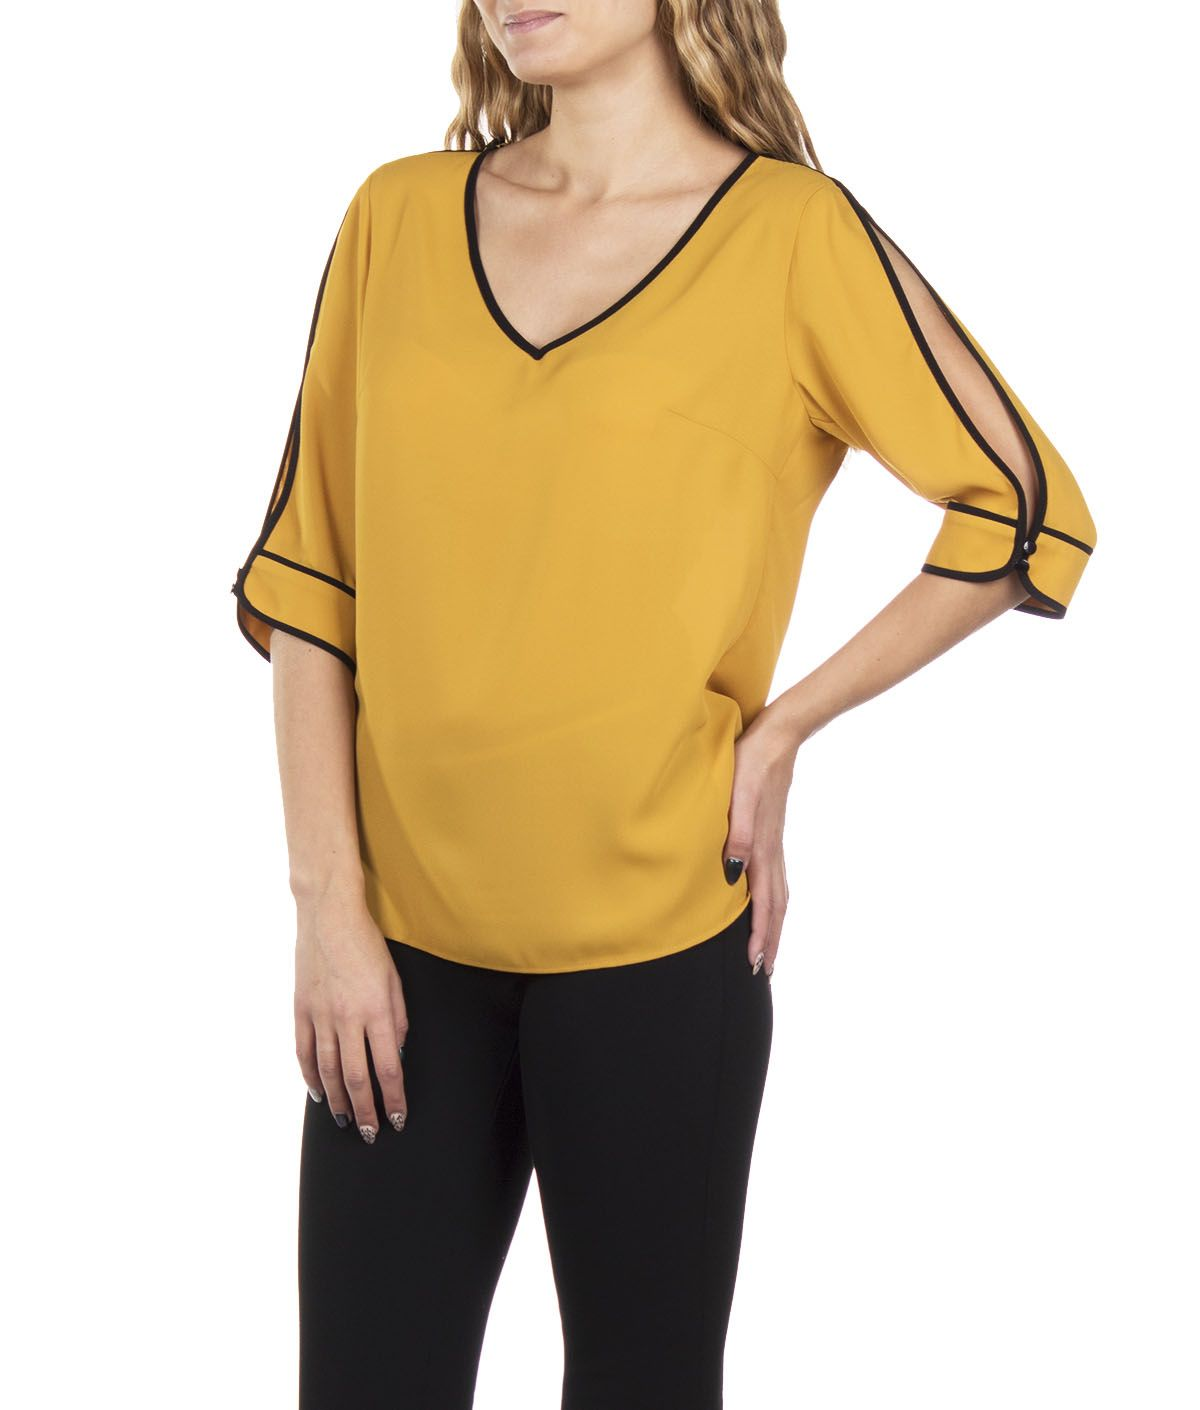 BLOUSE WITH ¾ SLEEVES V NECKLINE AND BLACK PIPPING 2